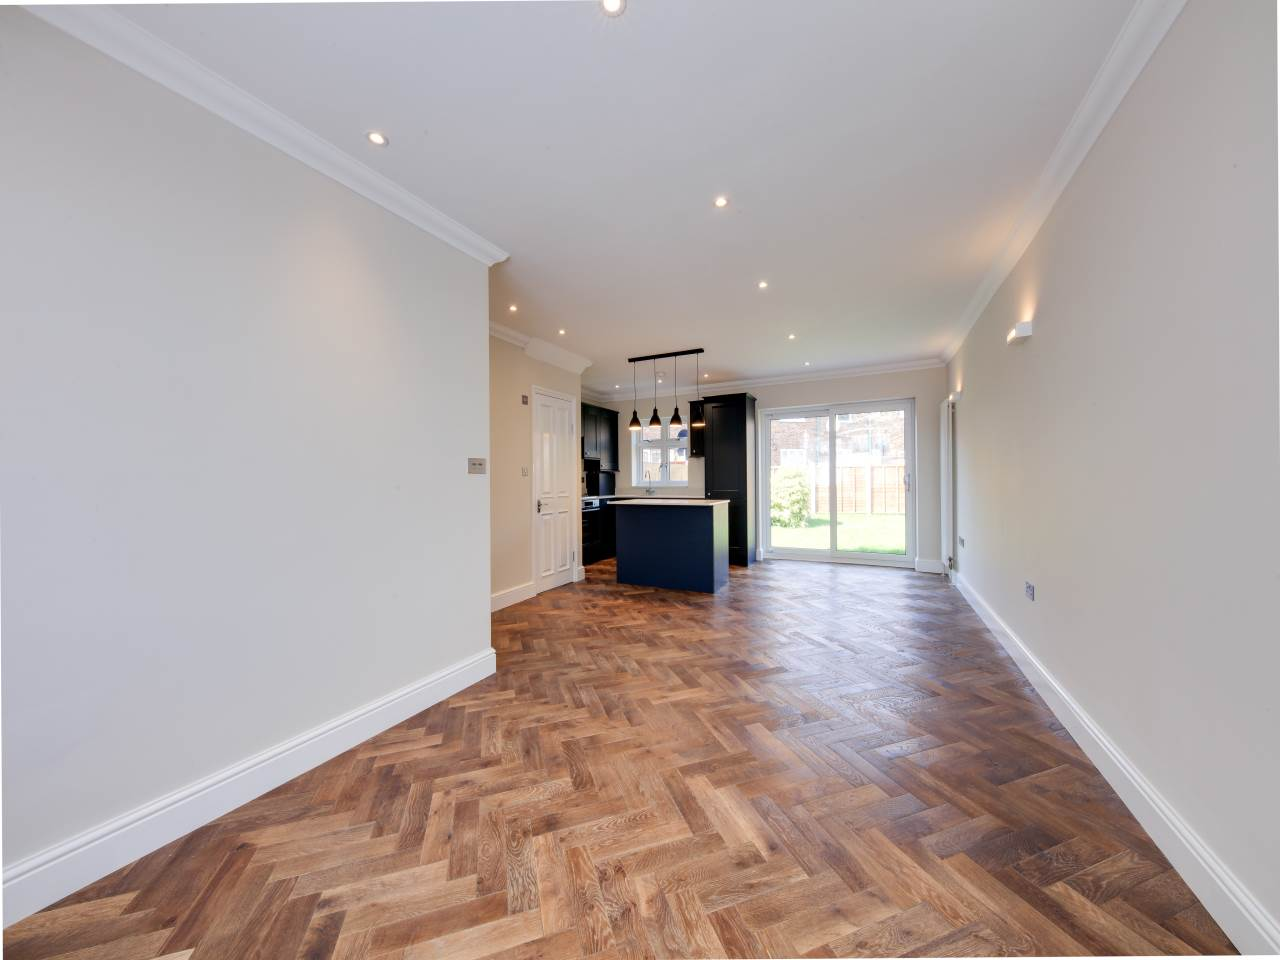 3 bed house for sale in Shernhall Street , Walthamstow   - Property Image 3